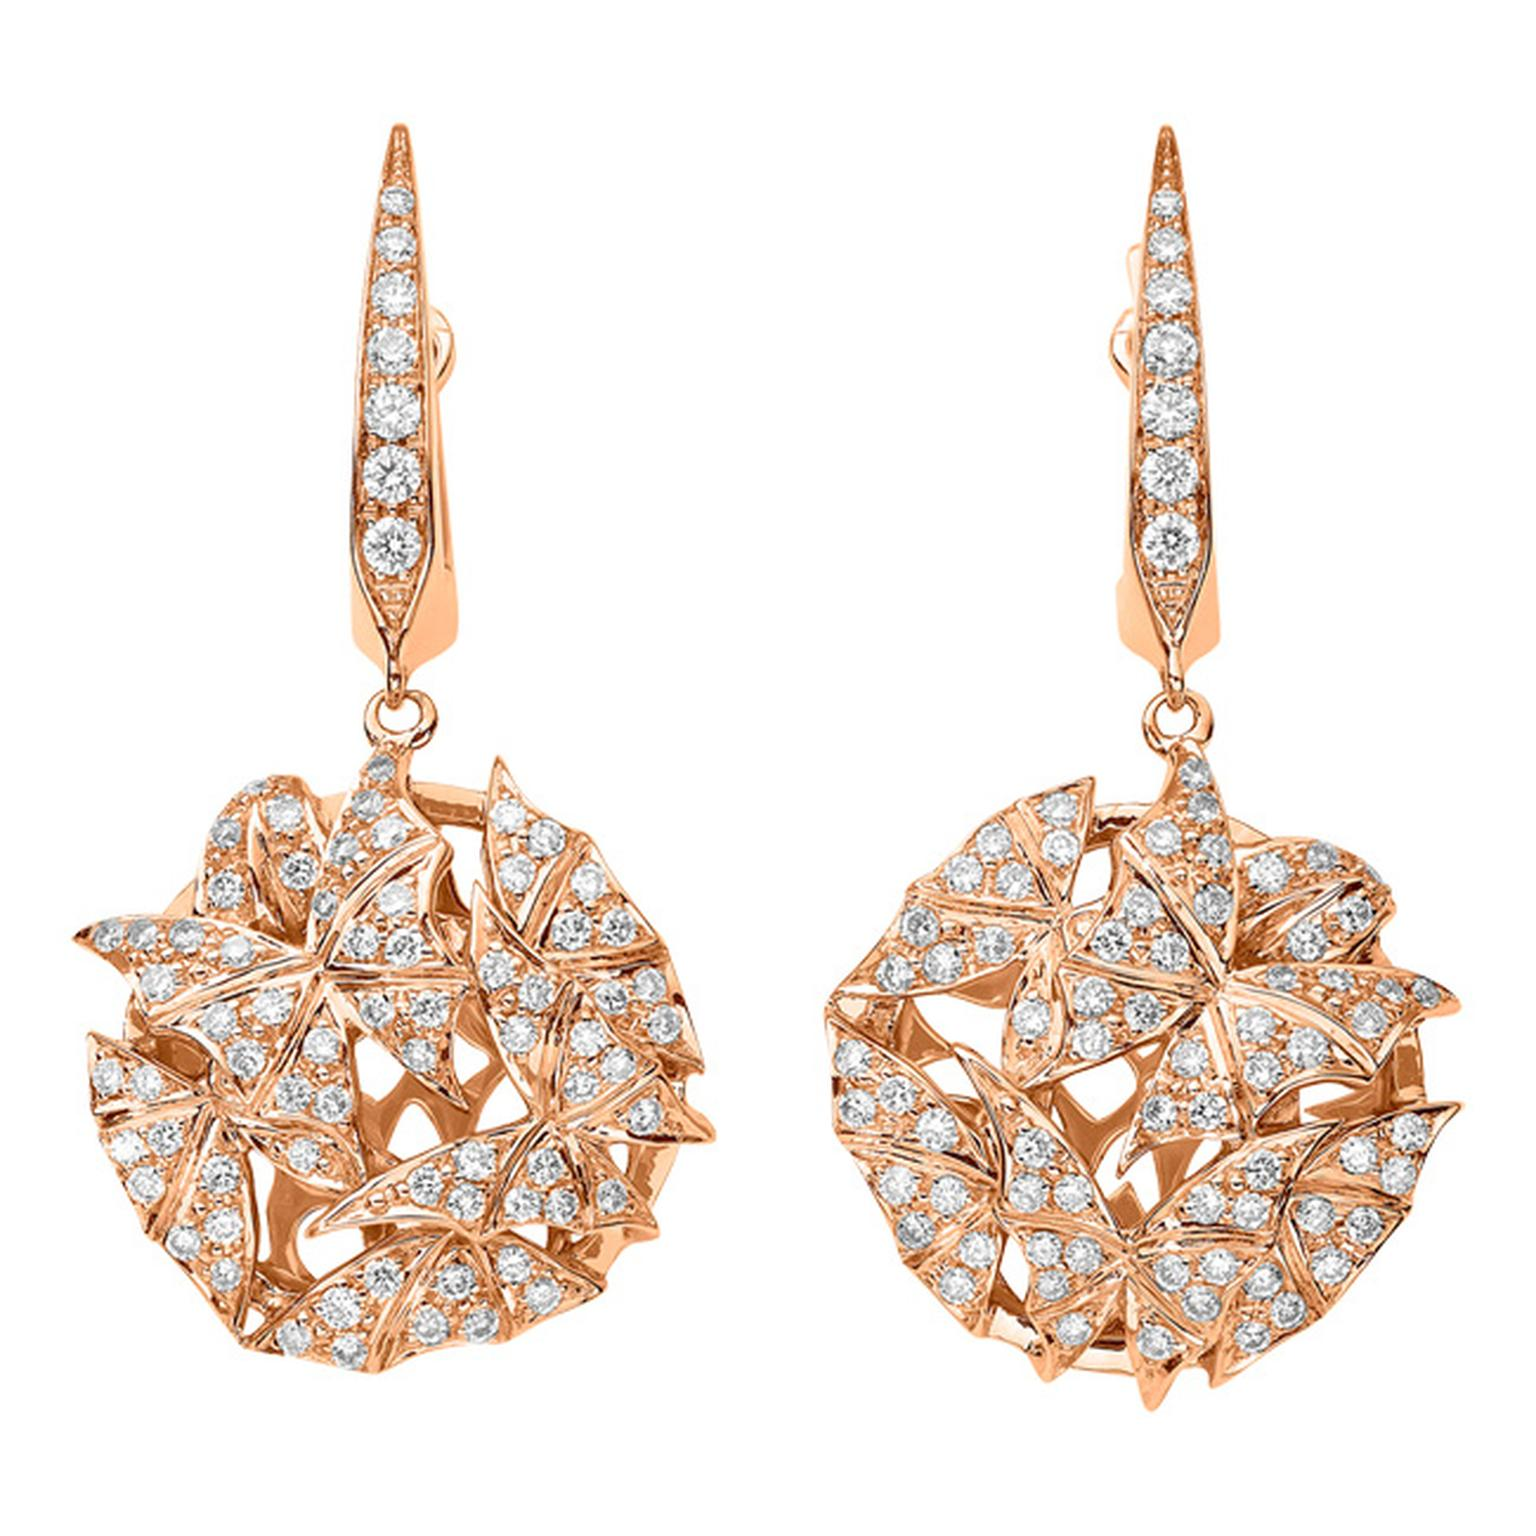 Stephen Webster Fly by Night Mothball earrings in rose gold and diamonds_20131220_Main